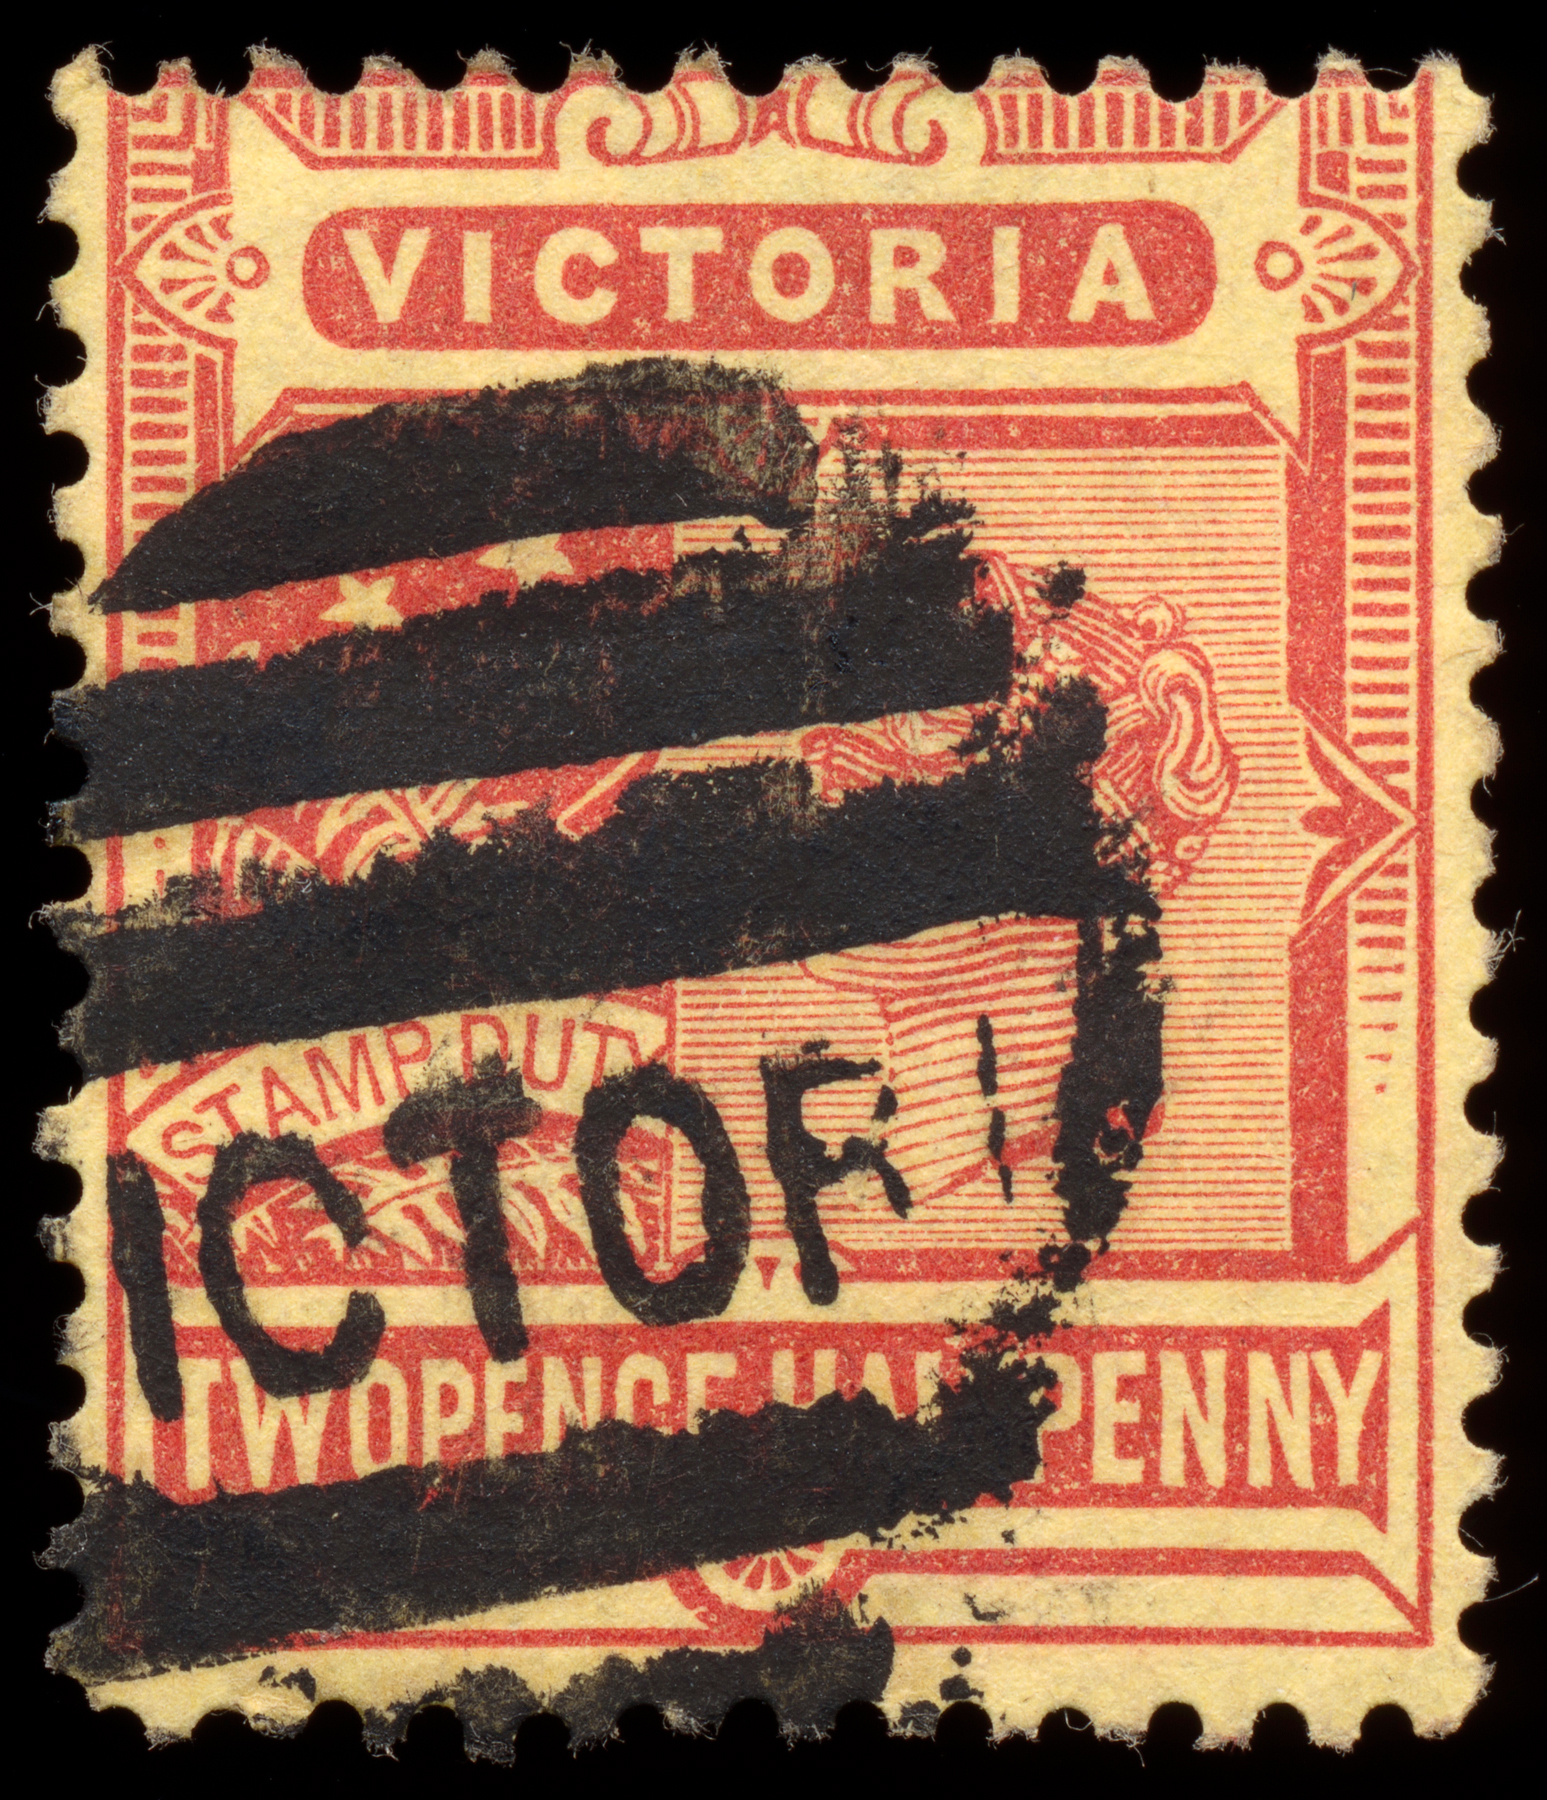 Red-yellow queen victoria stamp photo